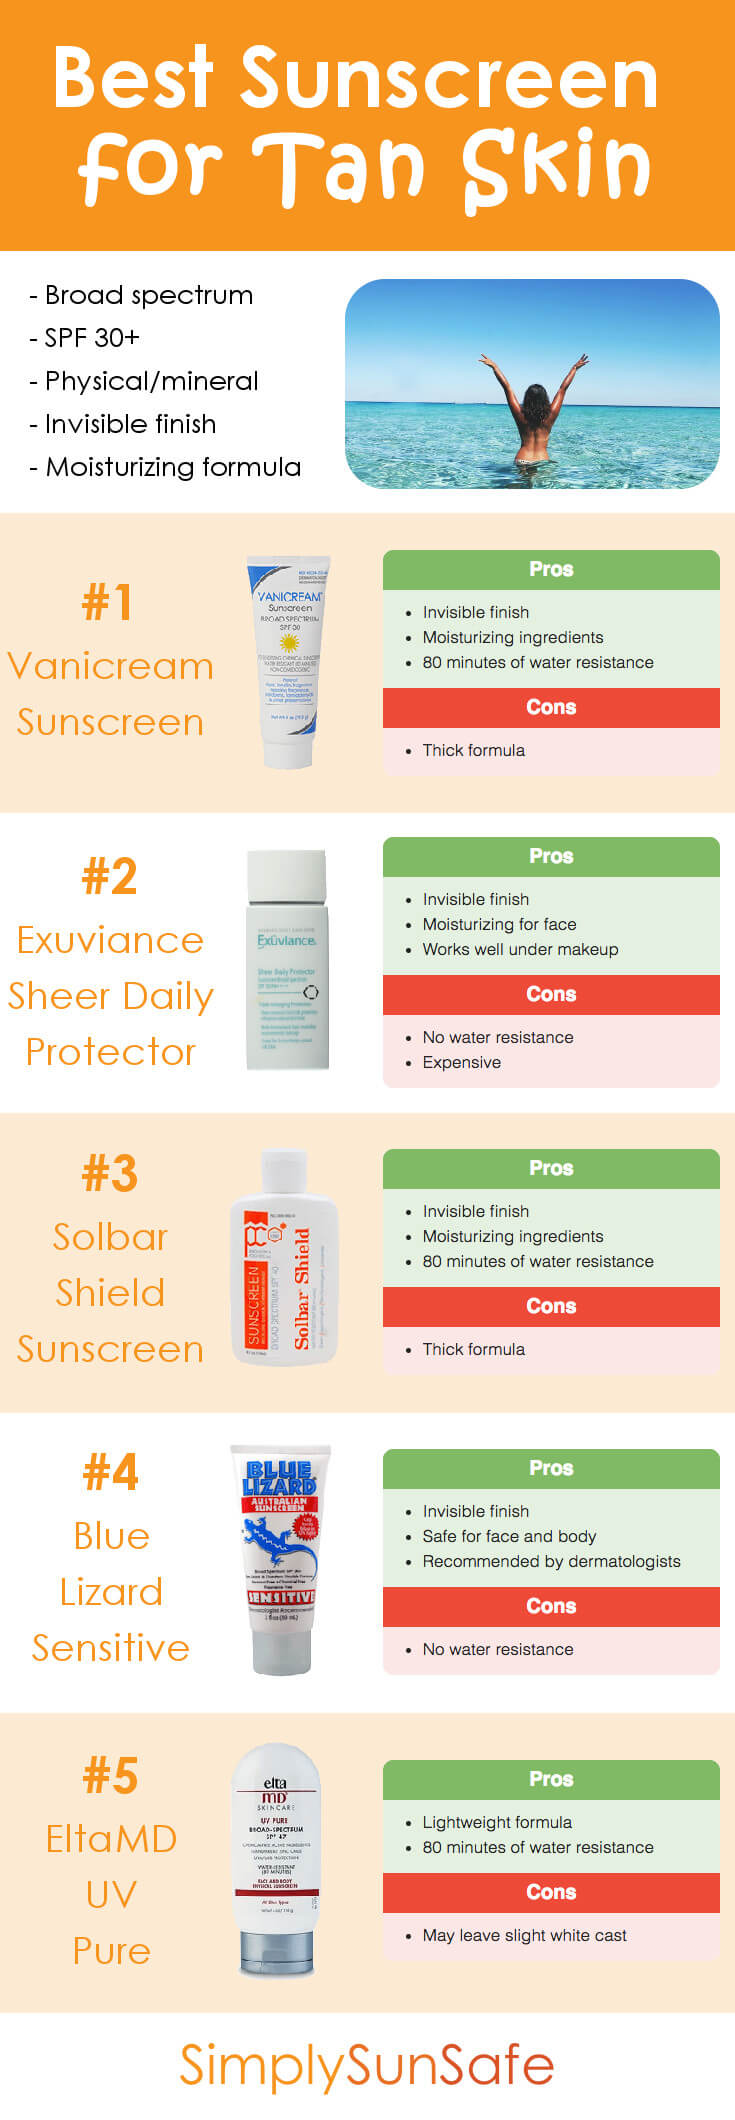 Best Sunscreen for Tan Skin Pinterest